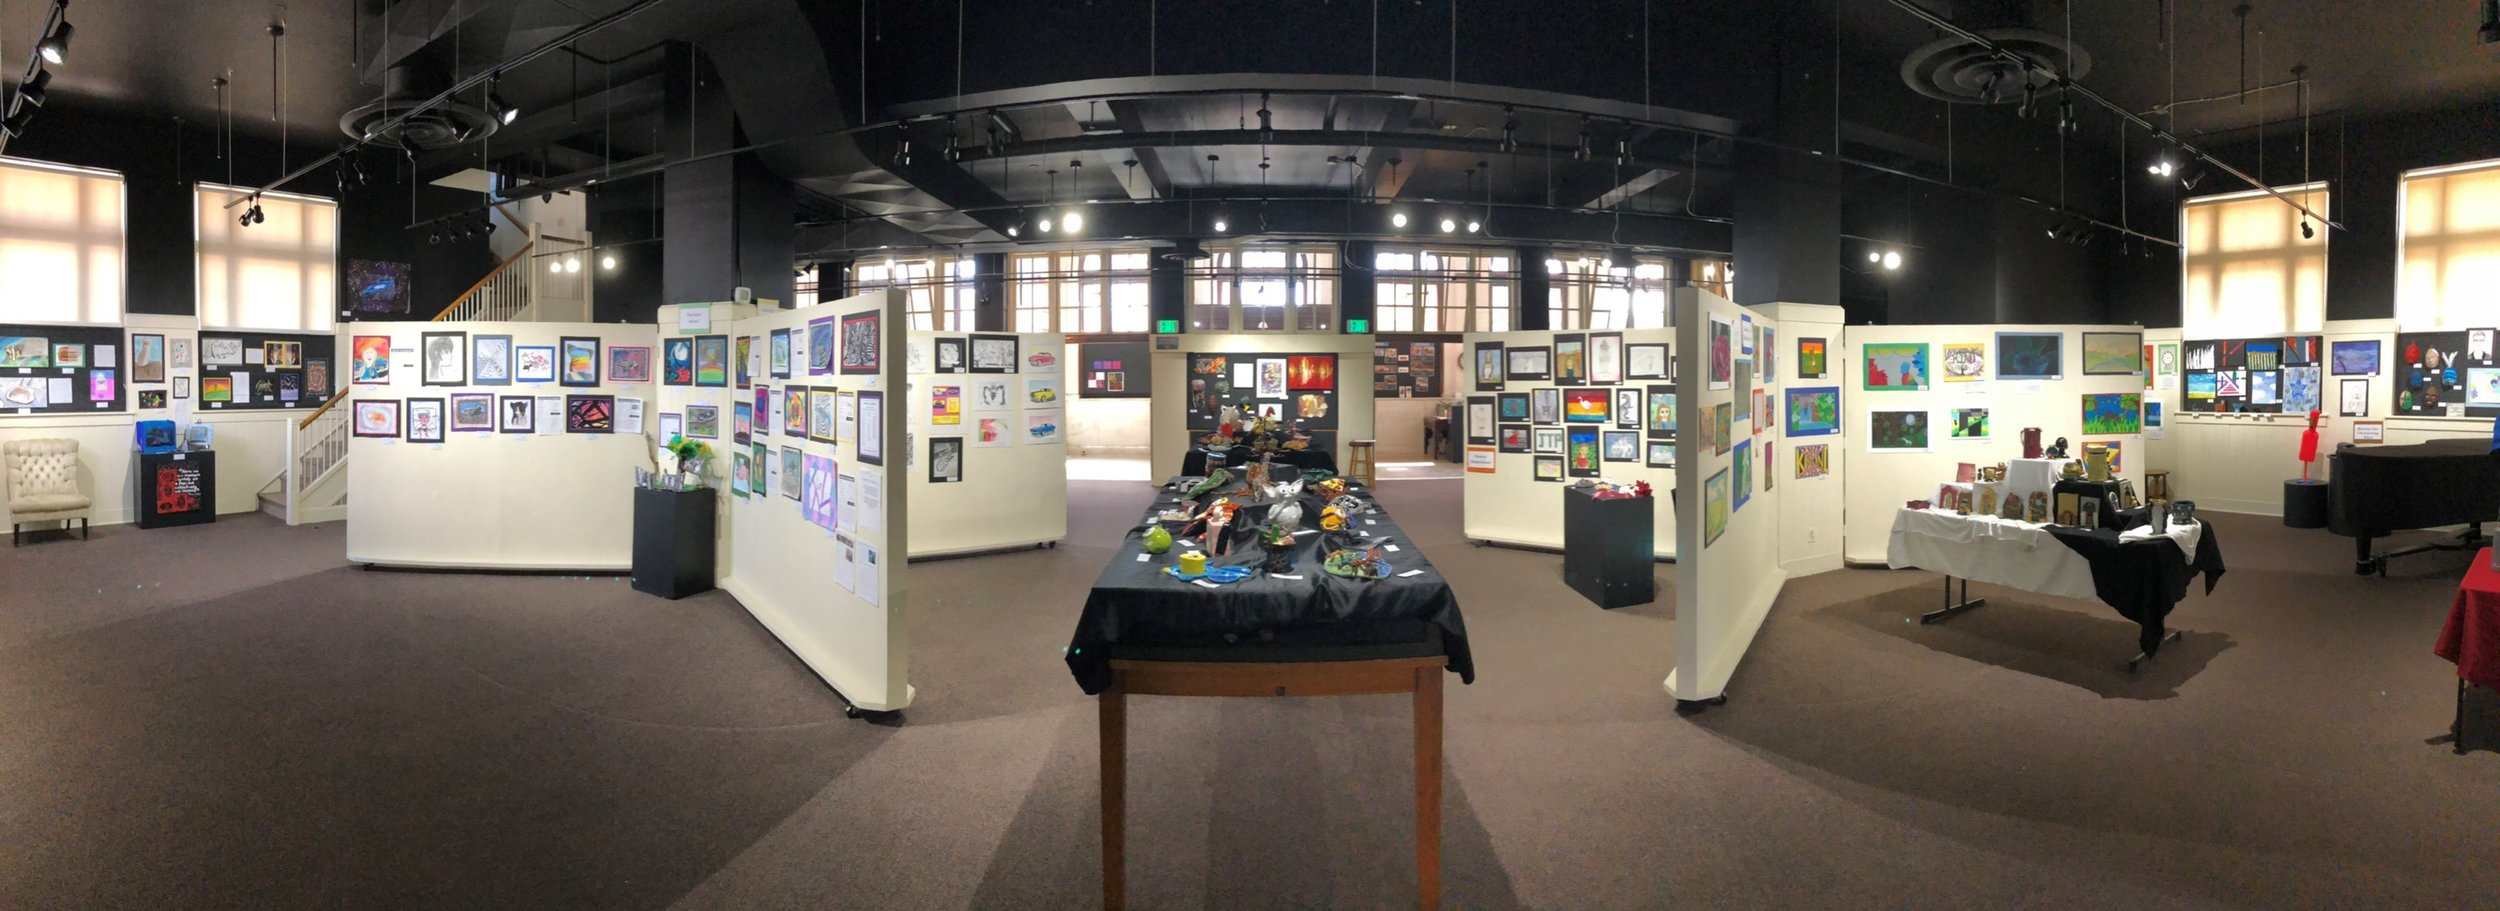 Pano of Gallery.jpg